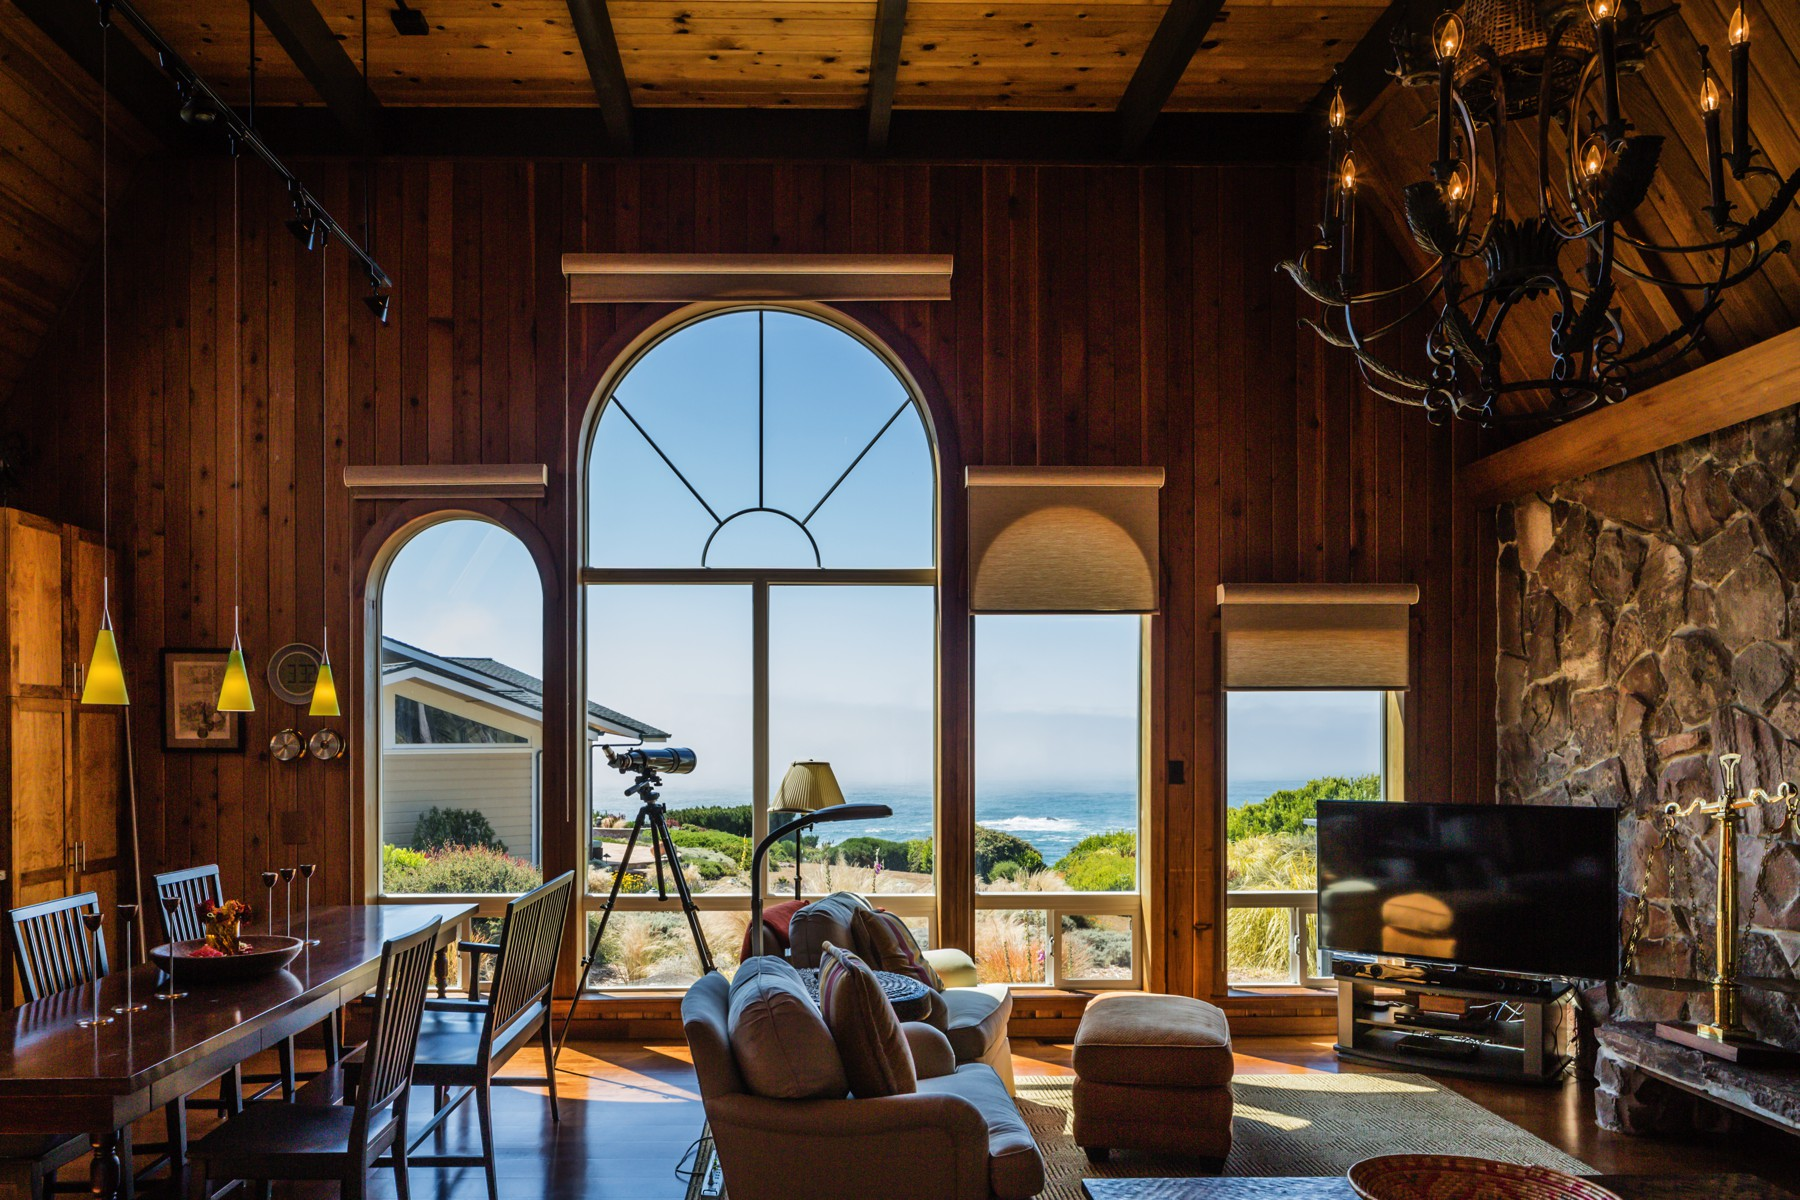 Single Family Home for Sale at Iconic Coastal Views 10921 Palette Drive Mendocino, California 94560 United States